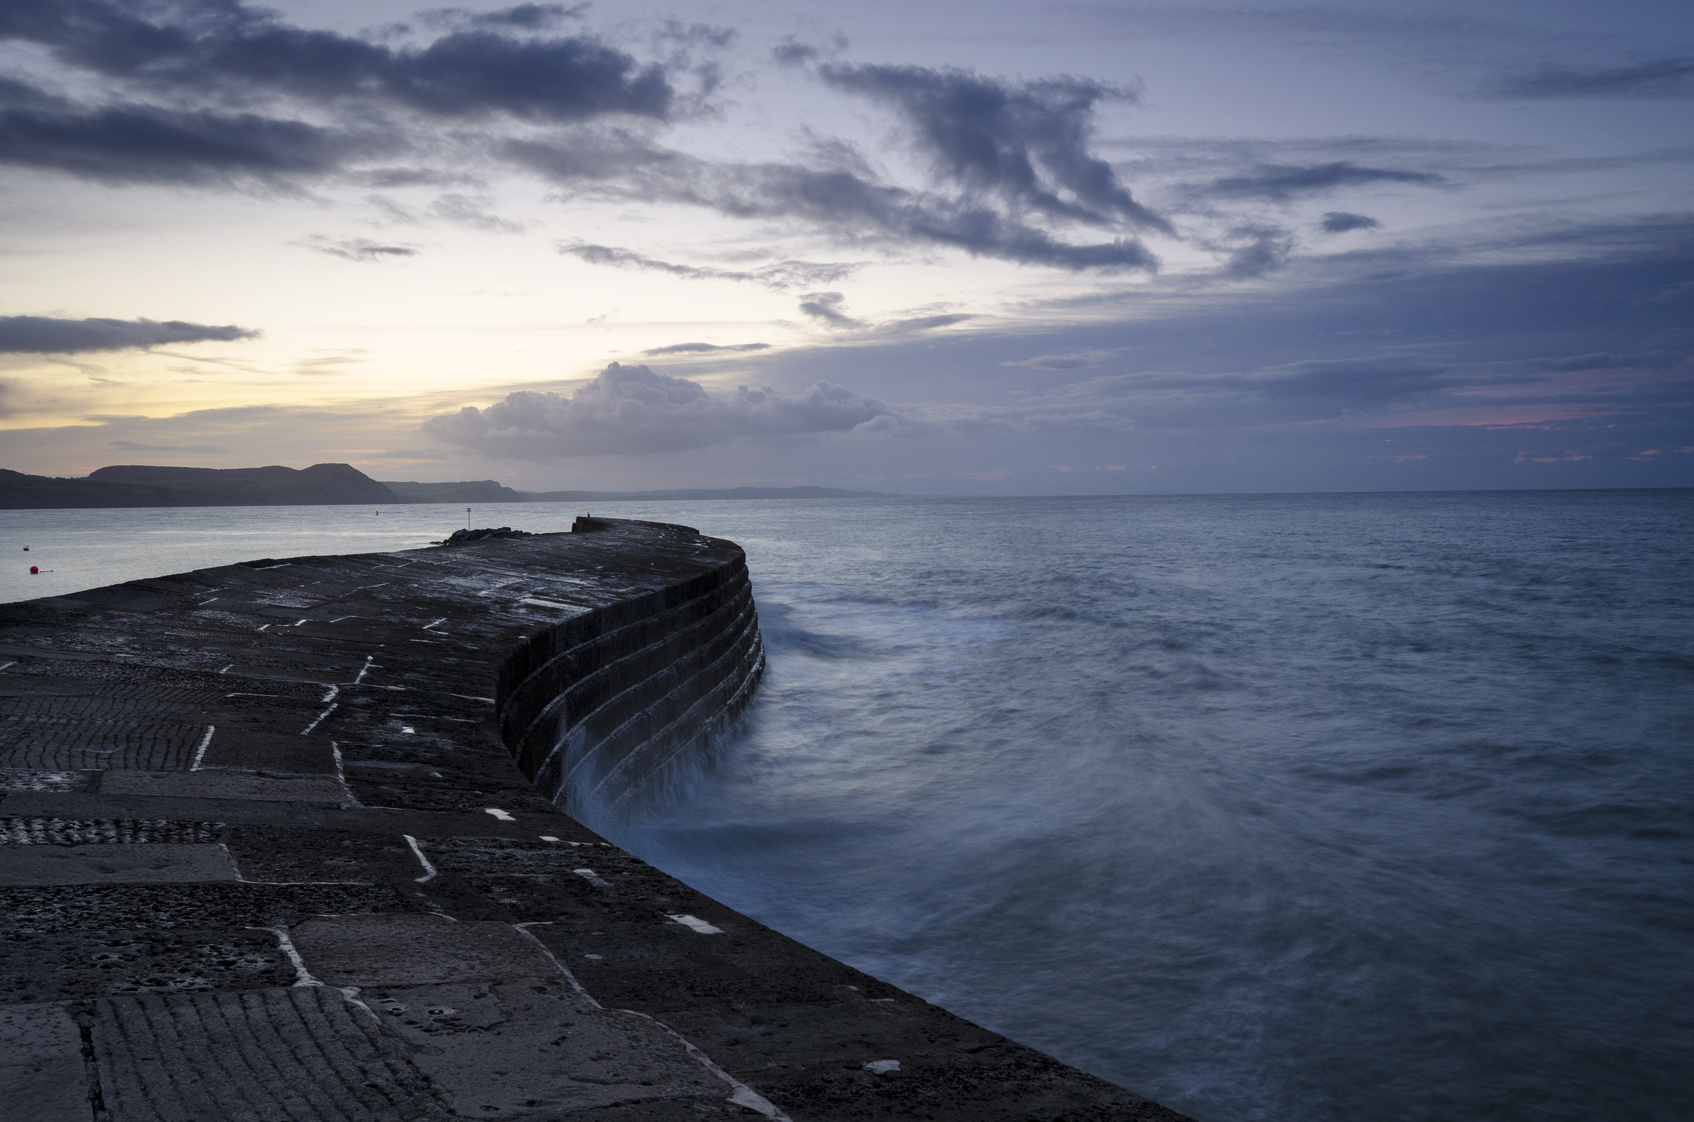 The Cobb at Lyme Regis